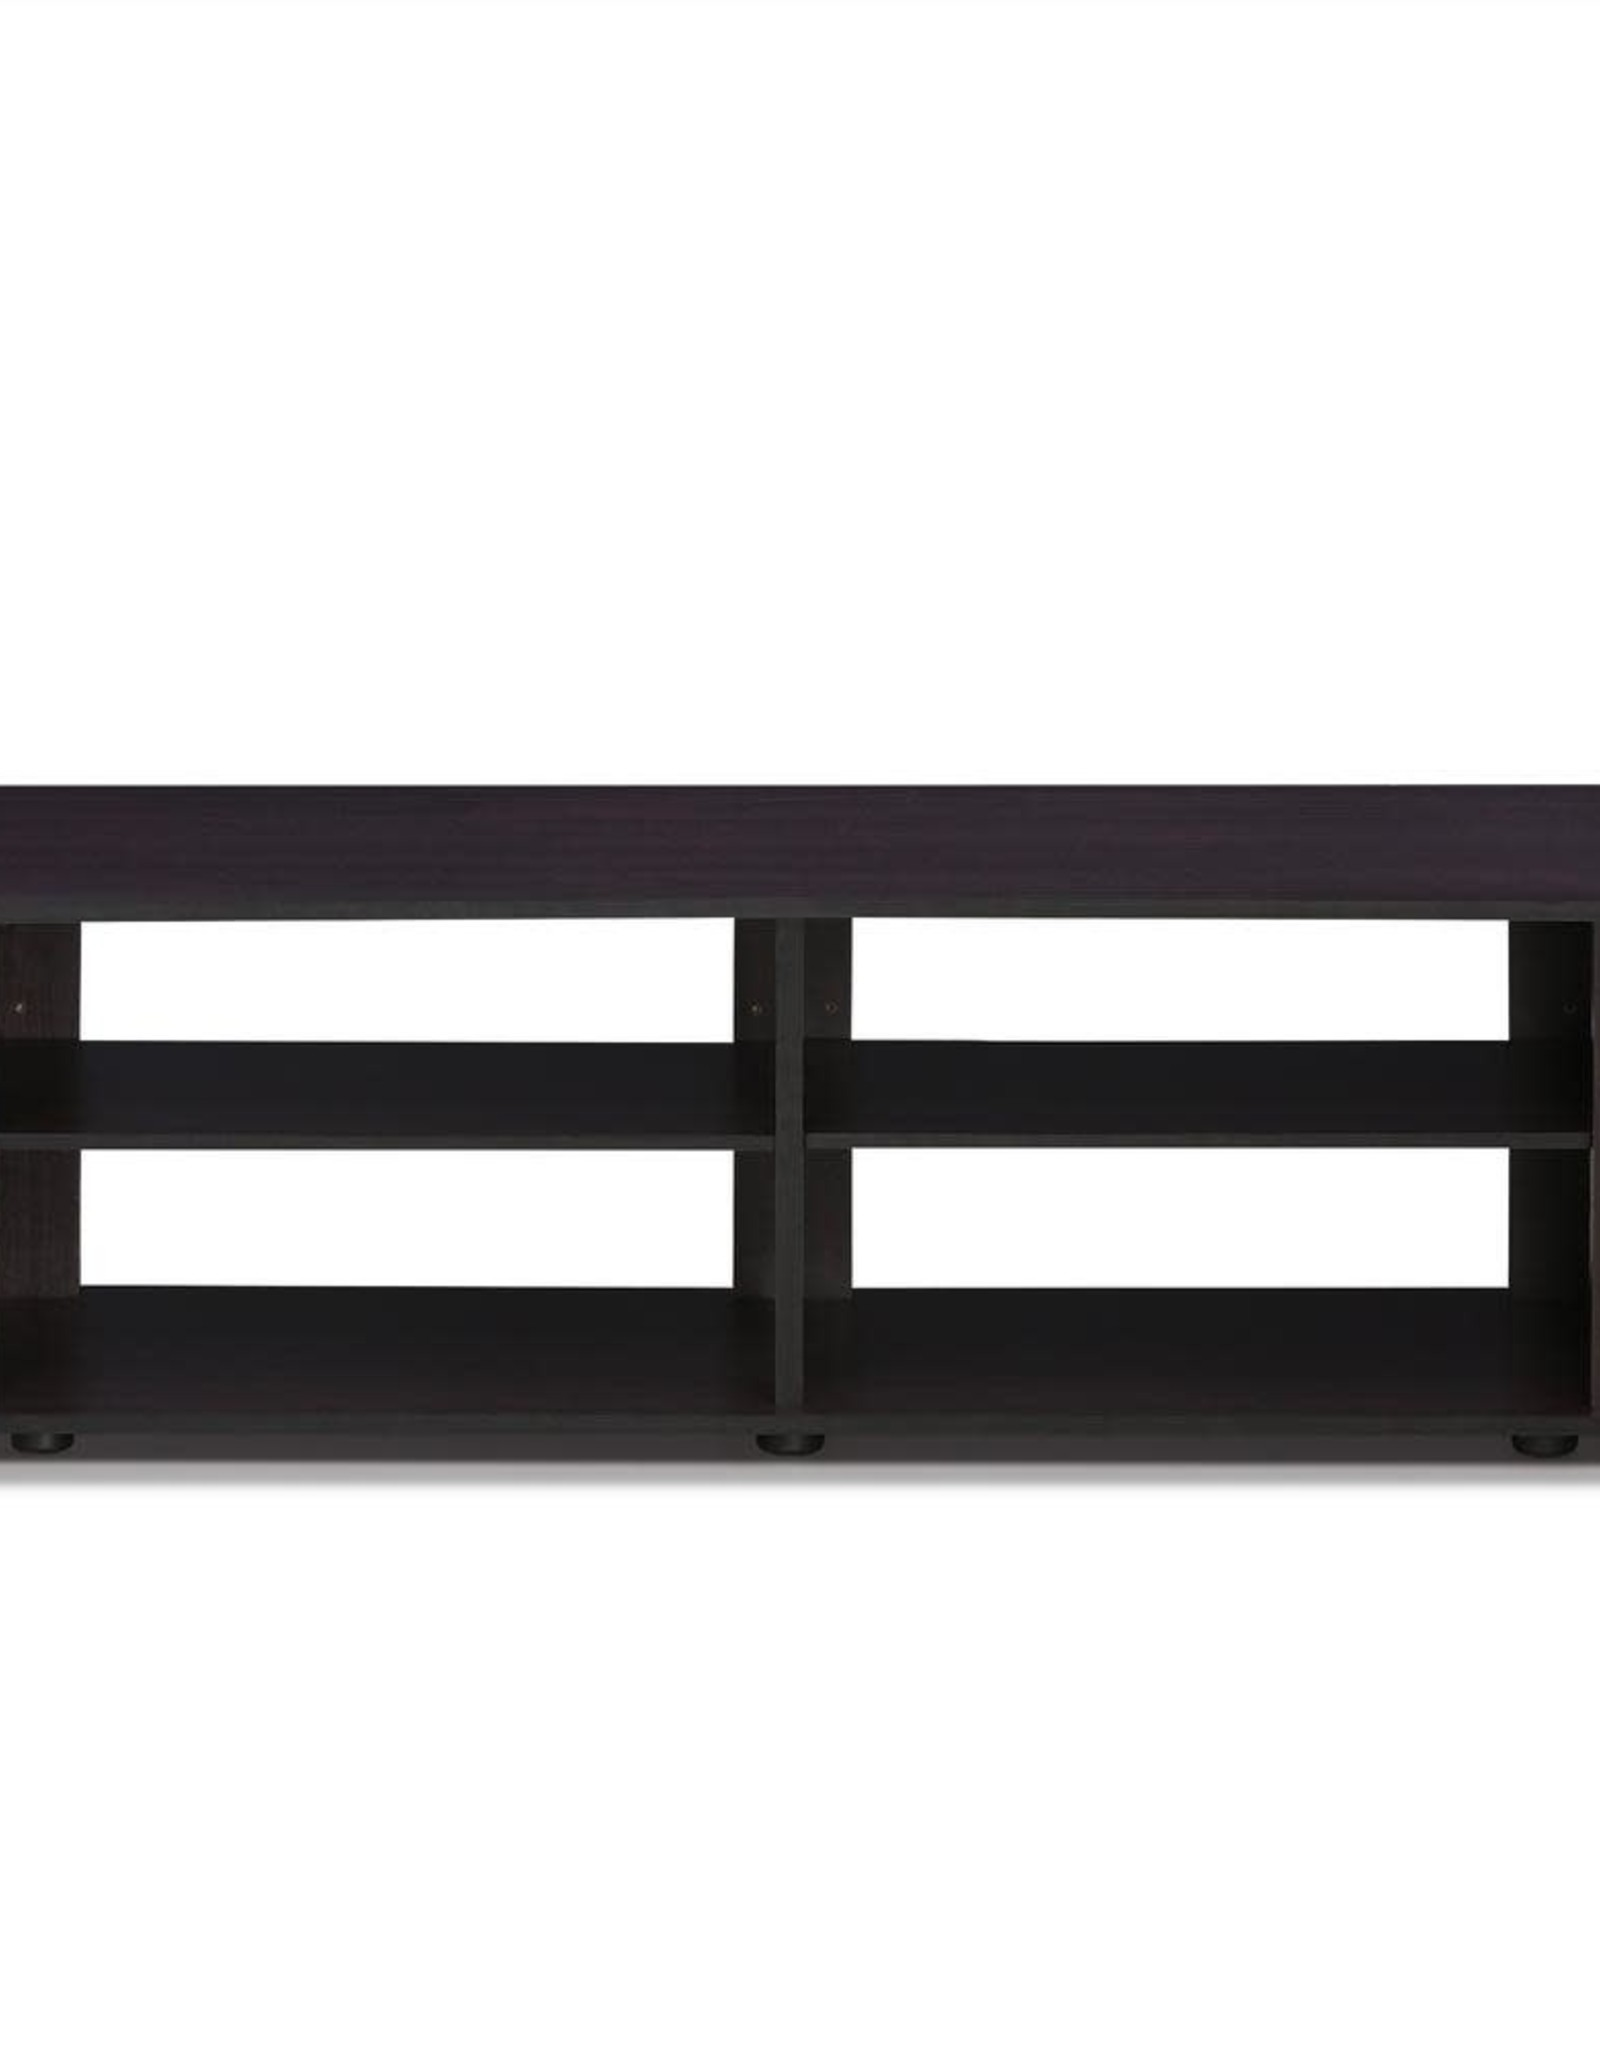 Furrino THE 43 in. Dark Walnut Particle Board TV Stand Fits TVs Up to 42 in. with Open Storage